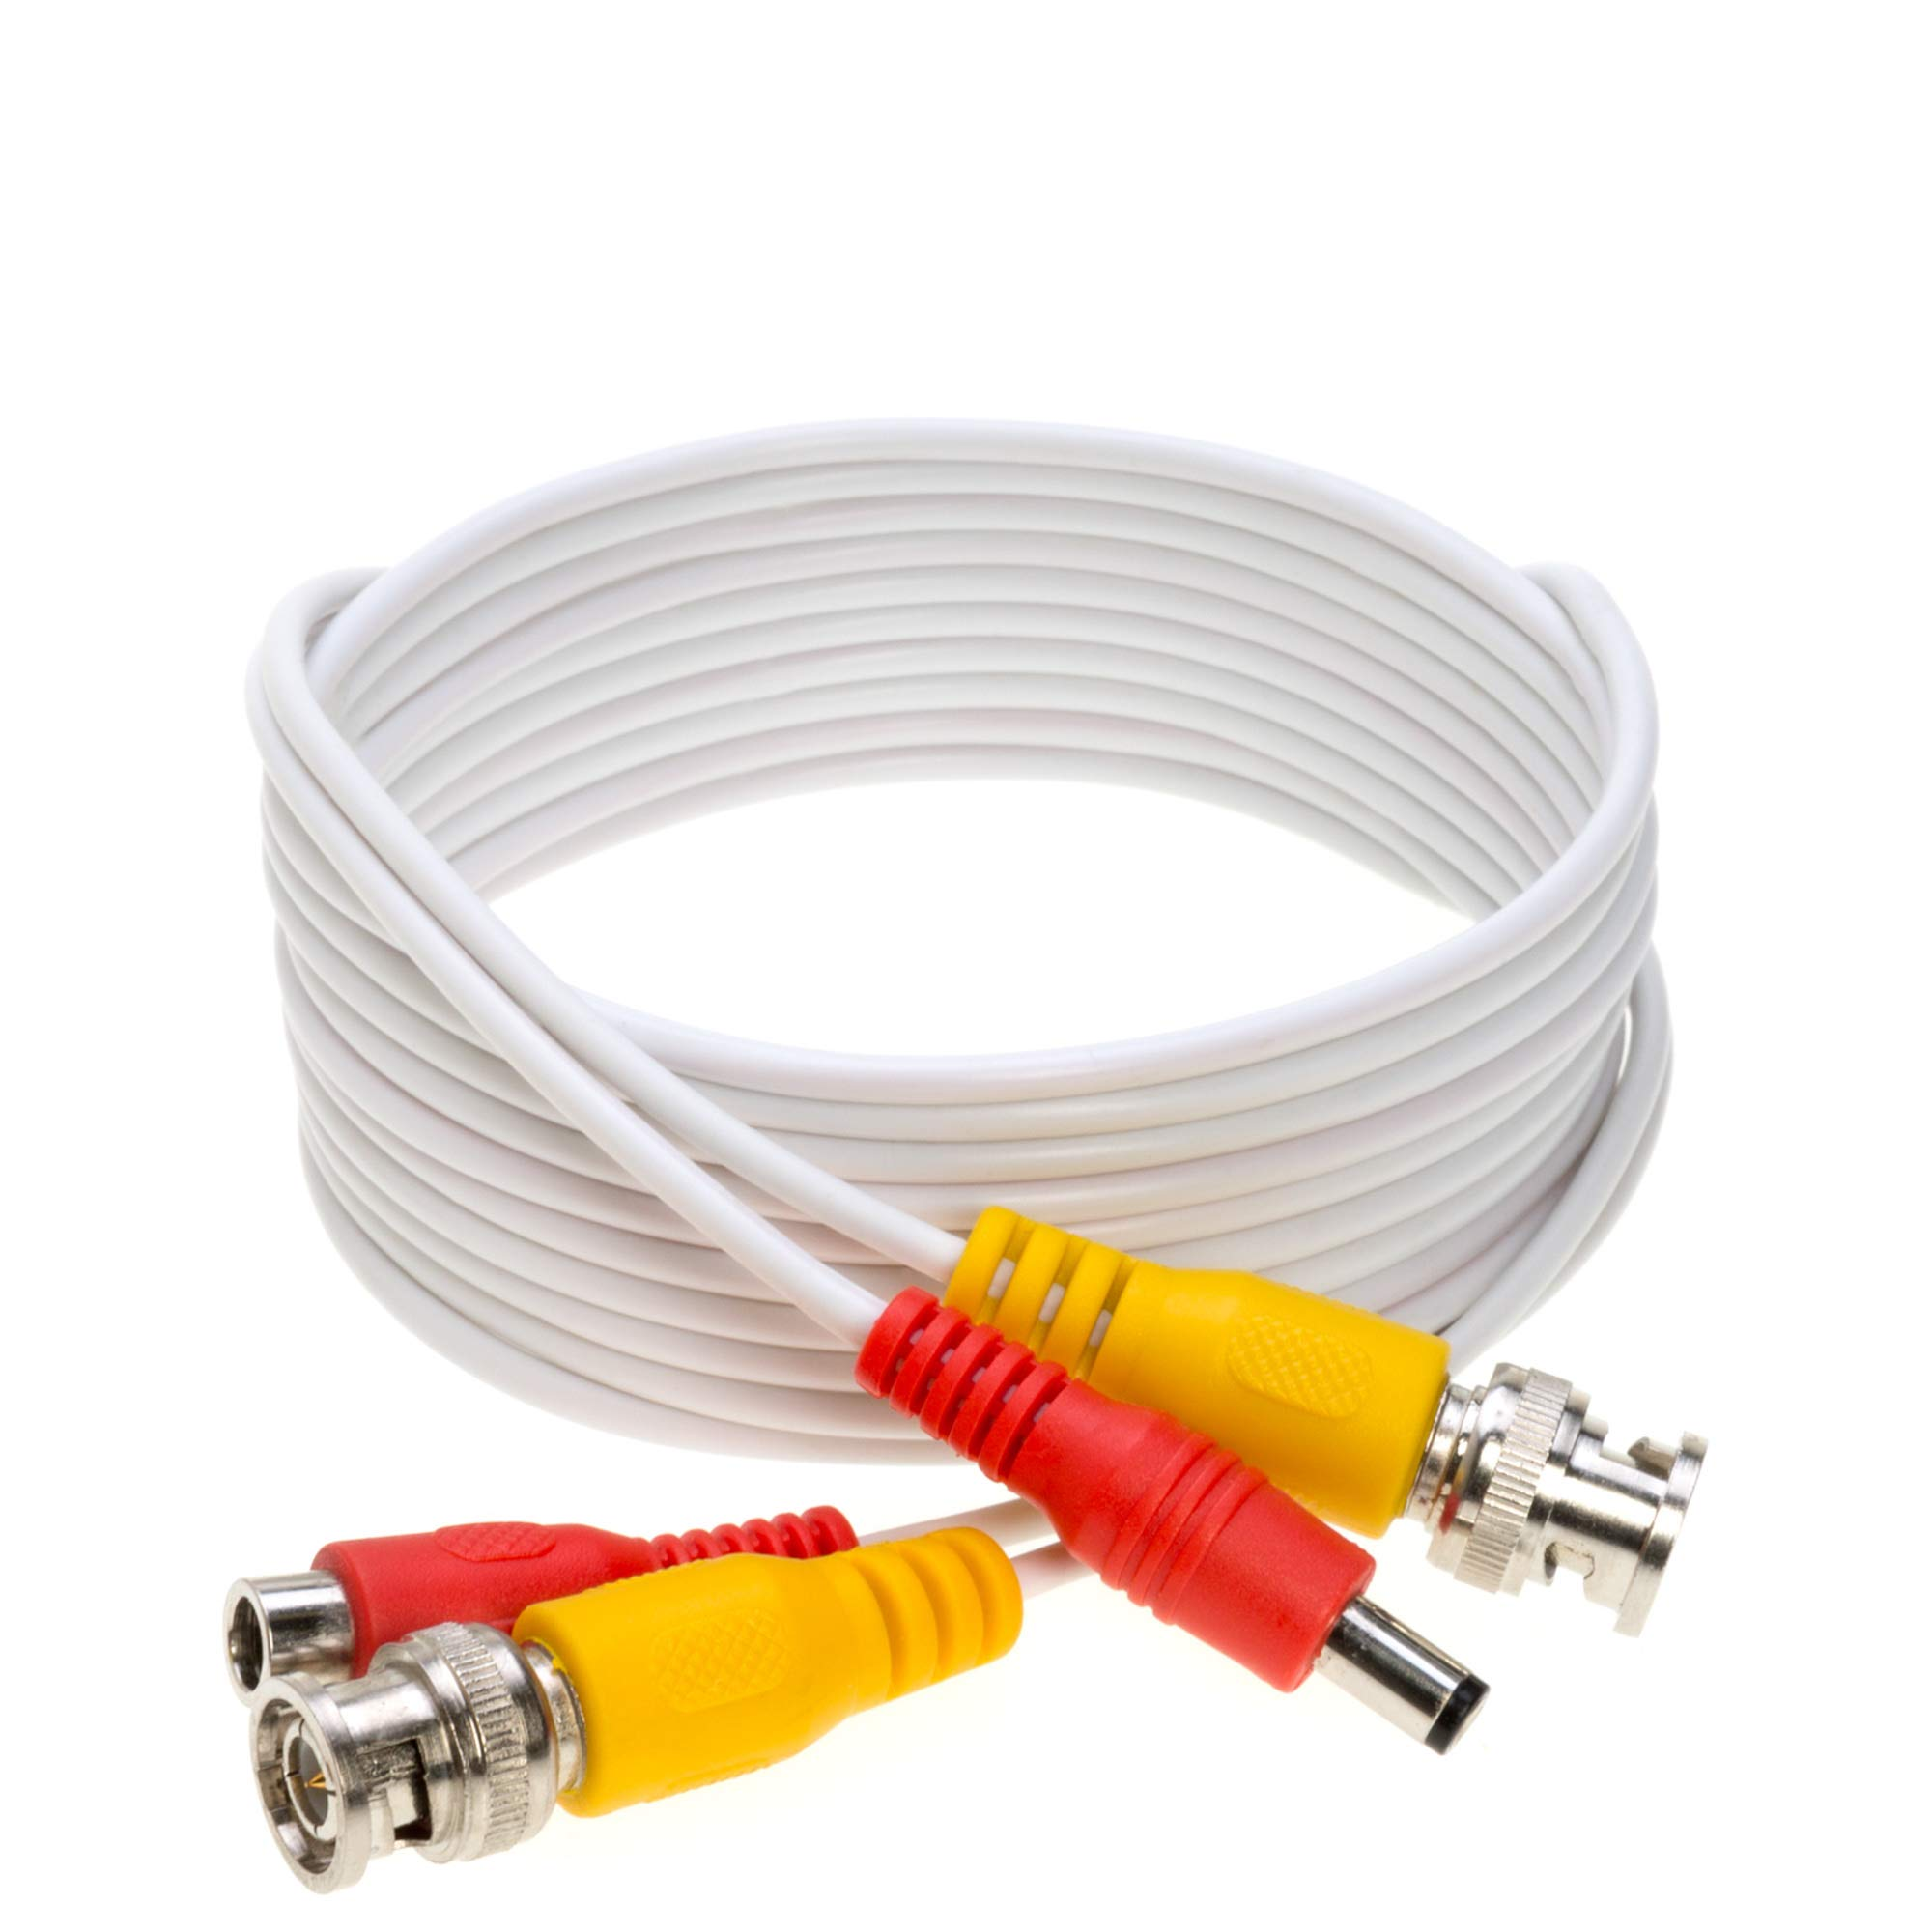 Amazon.com : 20FT White Premade BNC Video Power Cable/Wire for Security  Camera, CCTV, DVR, Surveillance System, Plug & Play (White, 20) : Camera &  PhotoAmazon.com